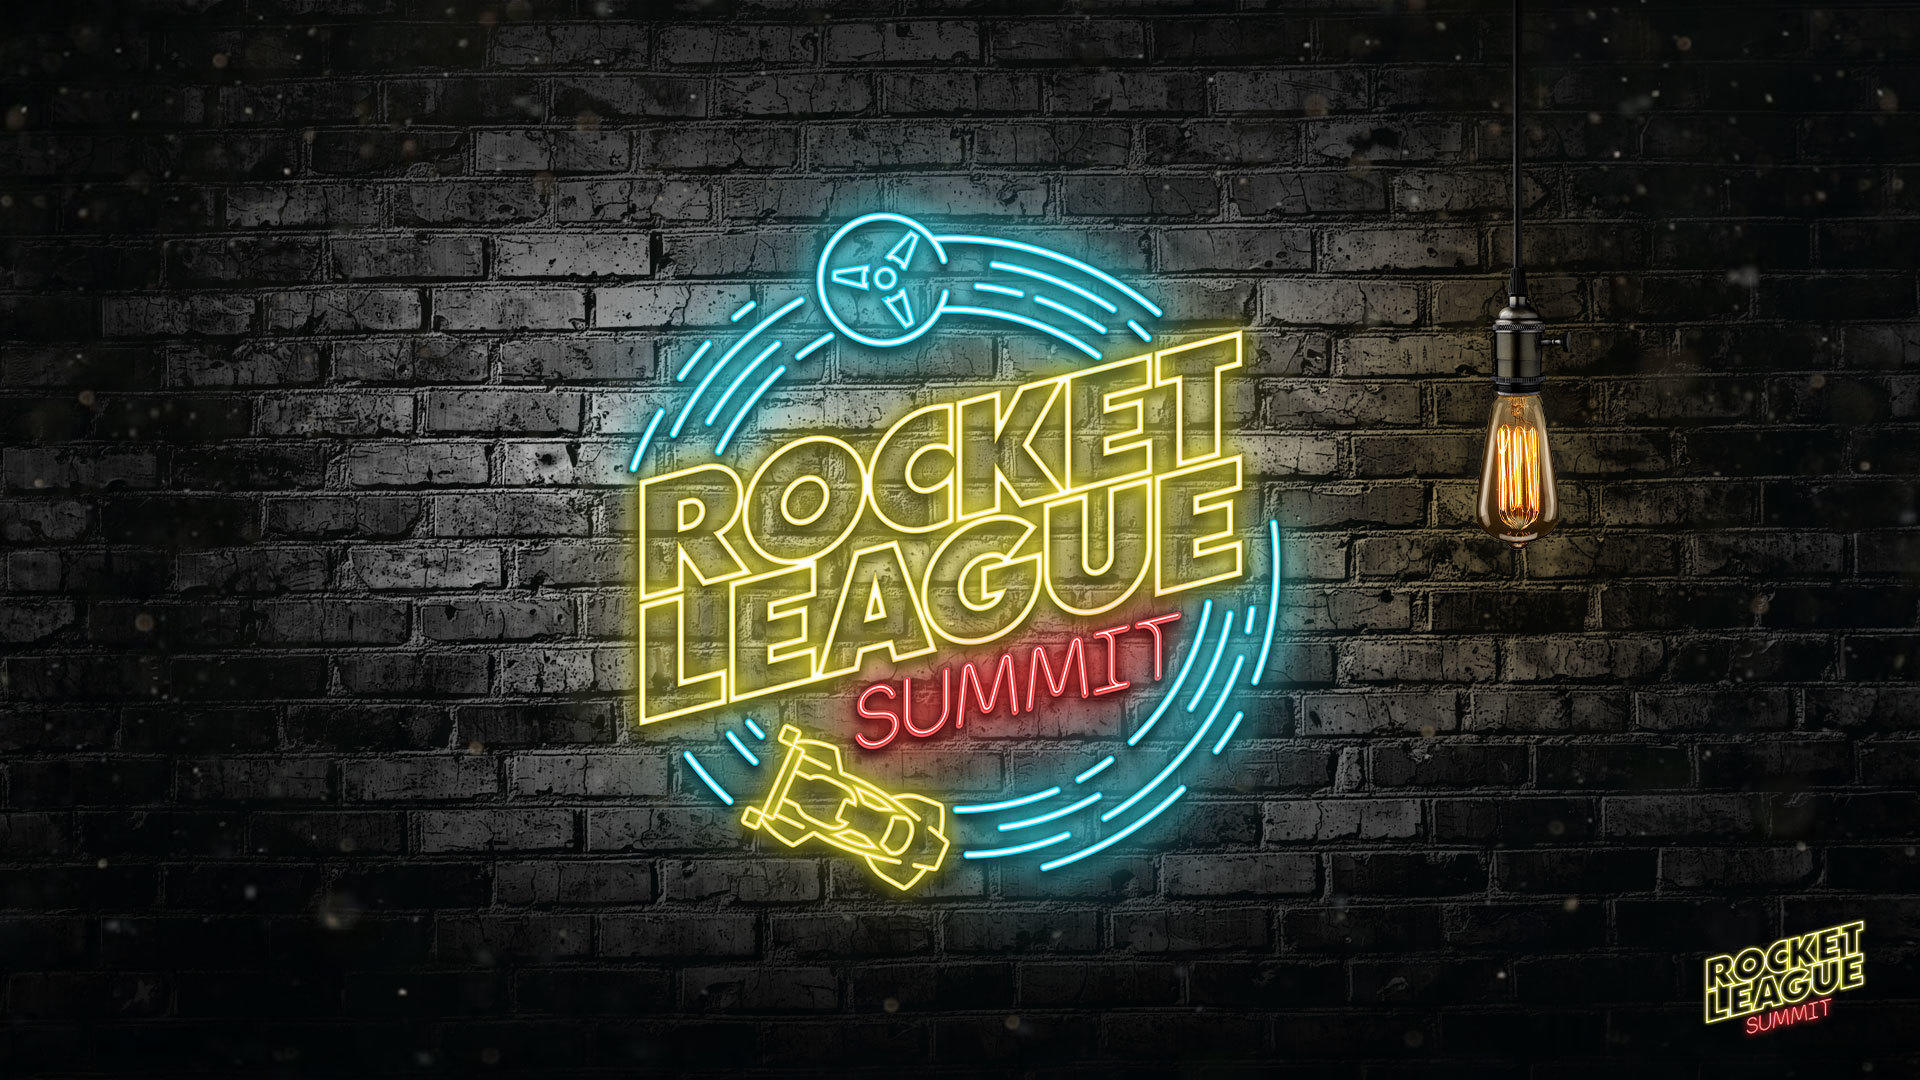 Tune In to the first-ever Rocket League Summit Presented by Beyond the Summit!  Image